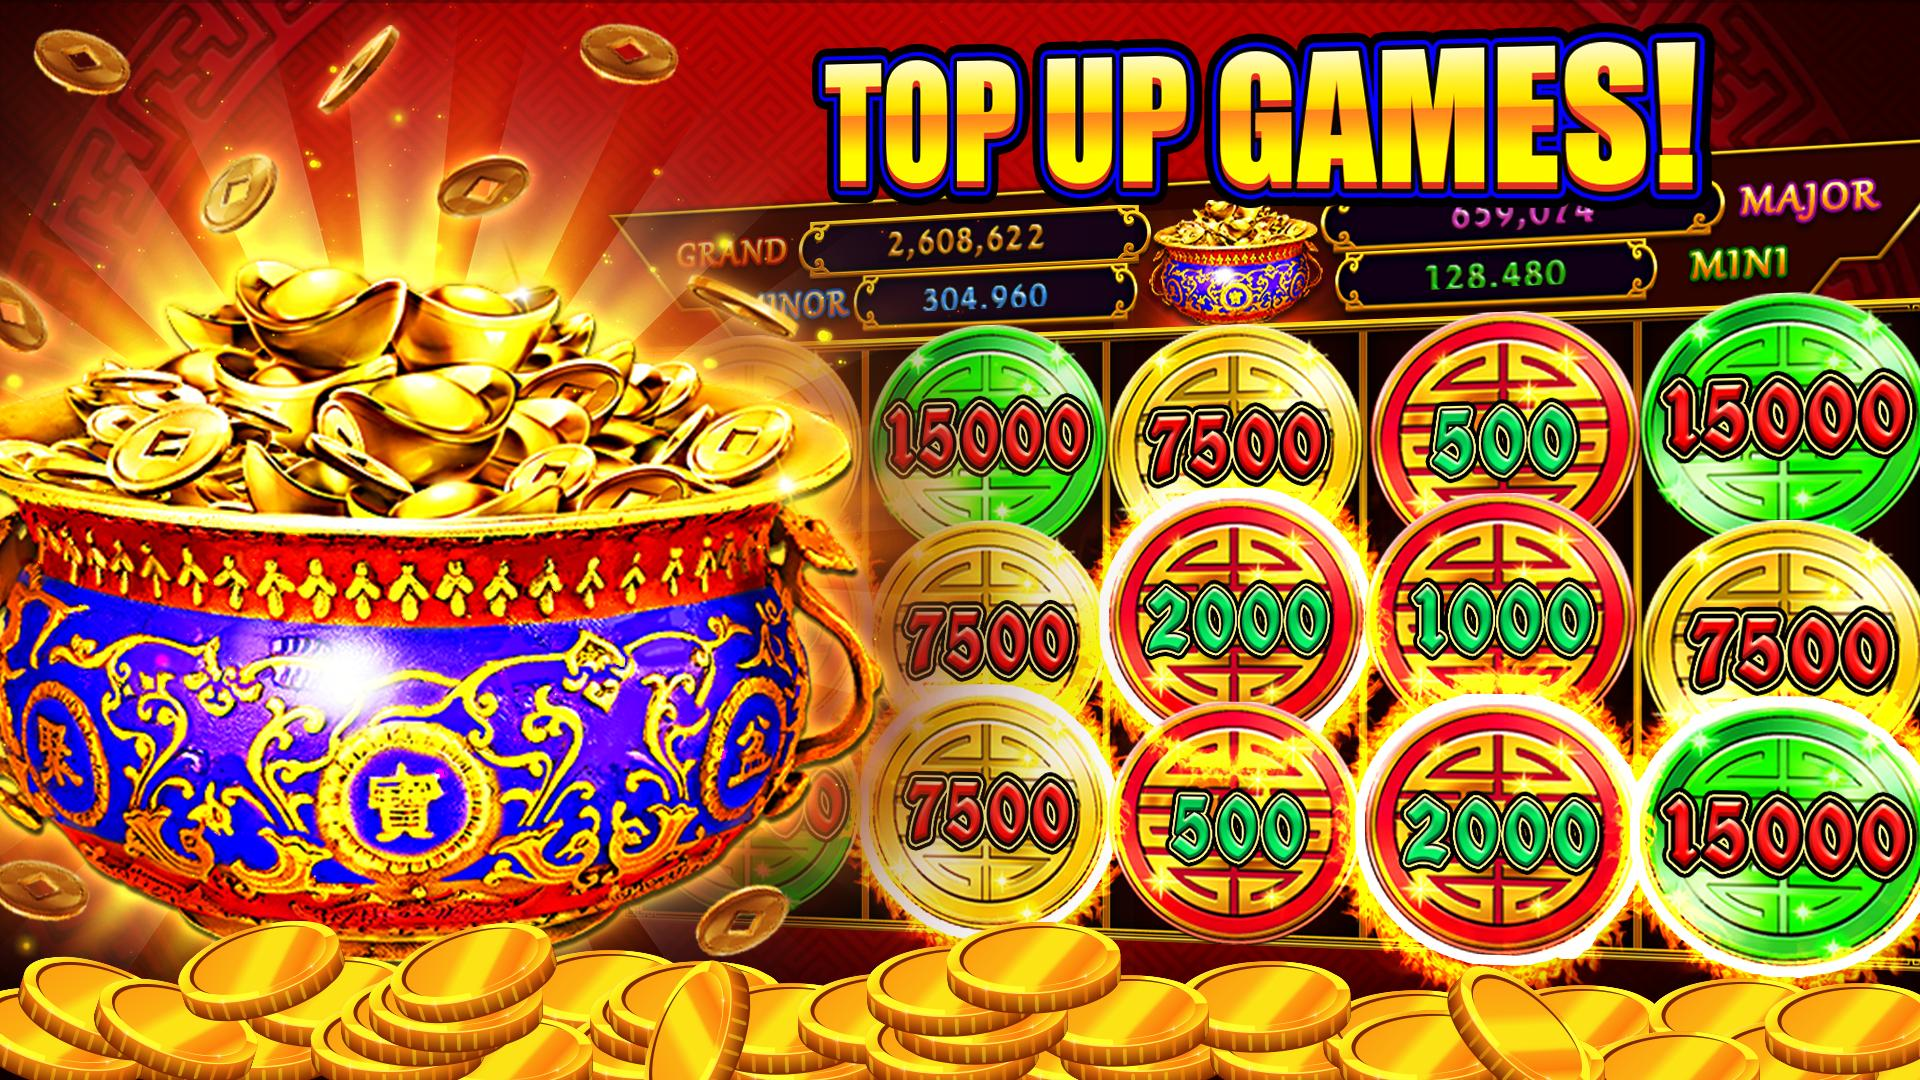 Vegas Casino Slots 2020 - 2,000,000 Free Coins 1.0.34 Screenshot 8